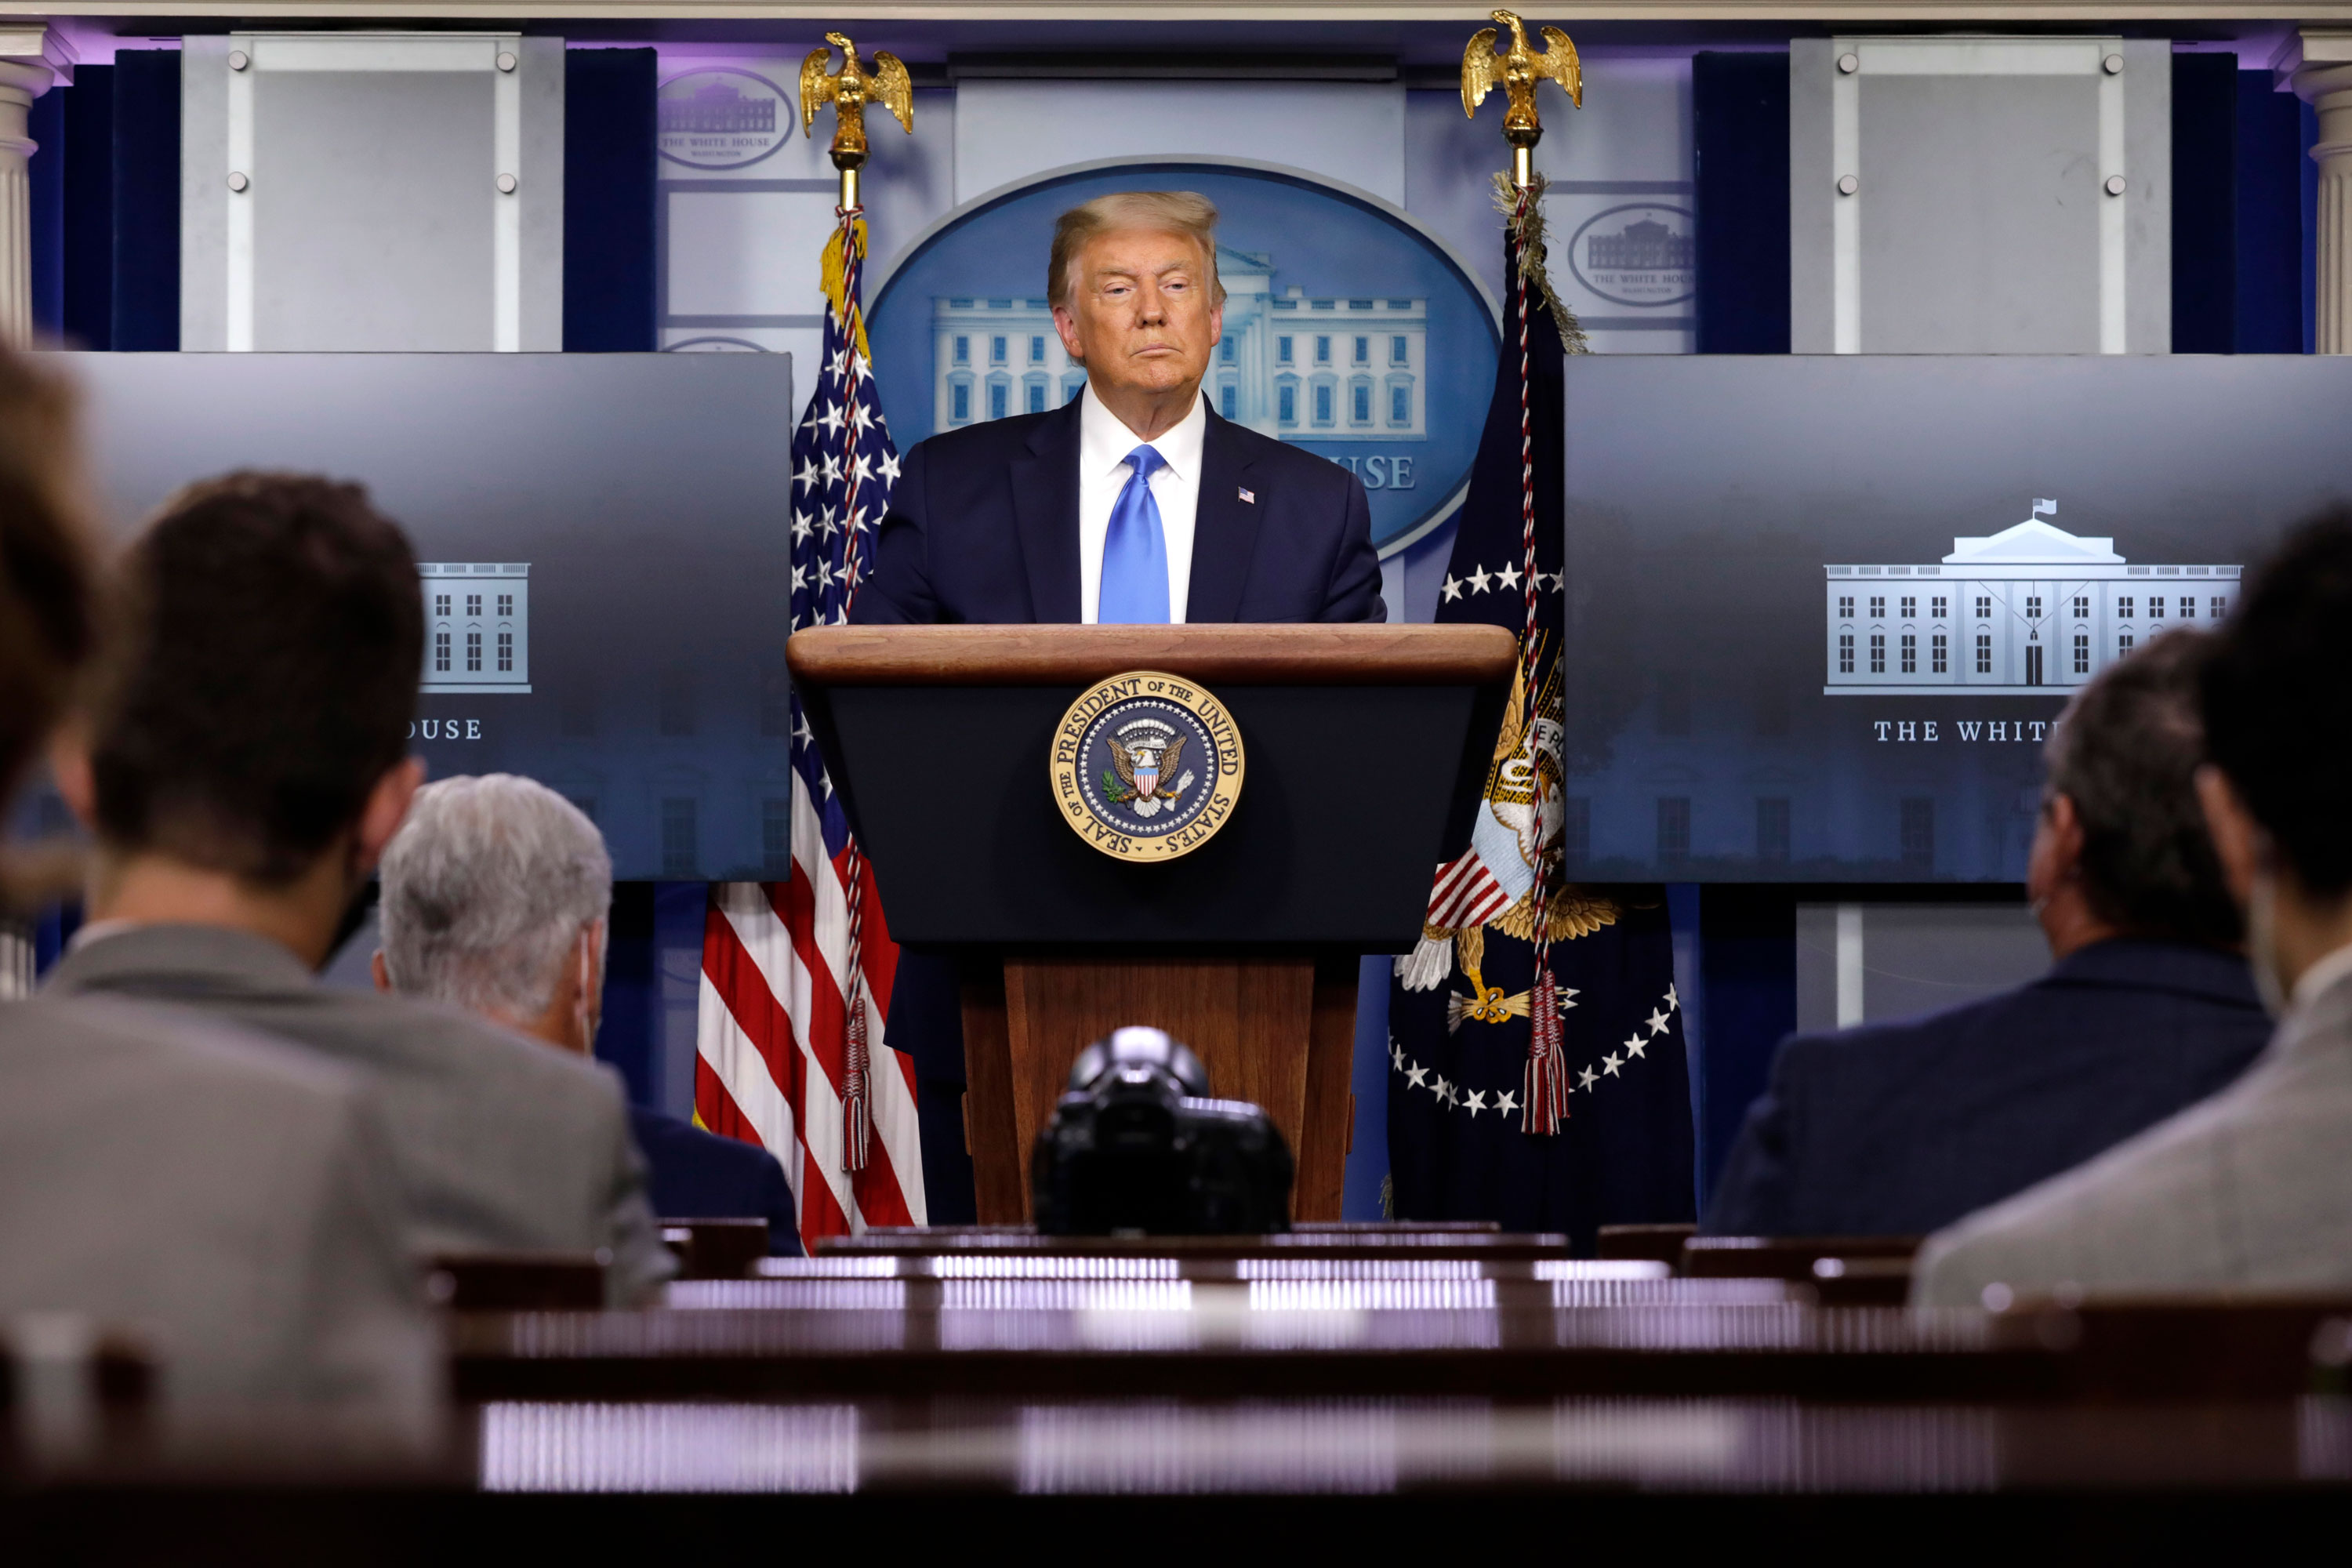 President Donald Trump holds a news conference at the White House on September 23.